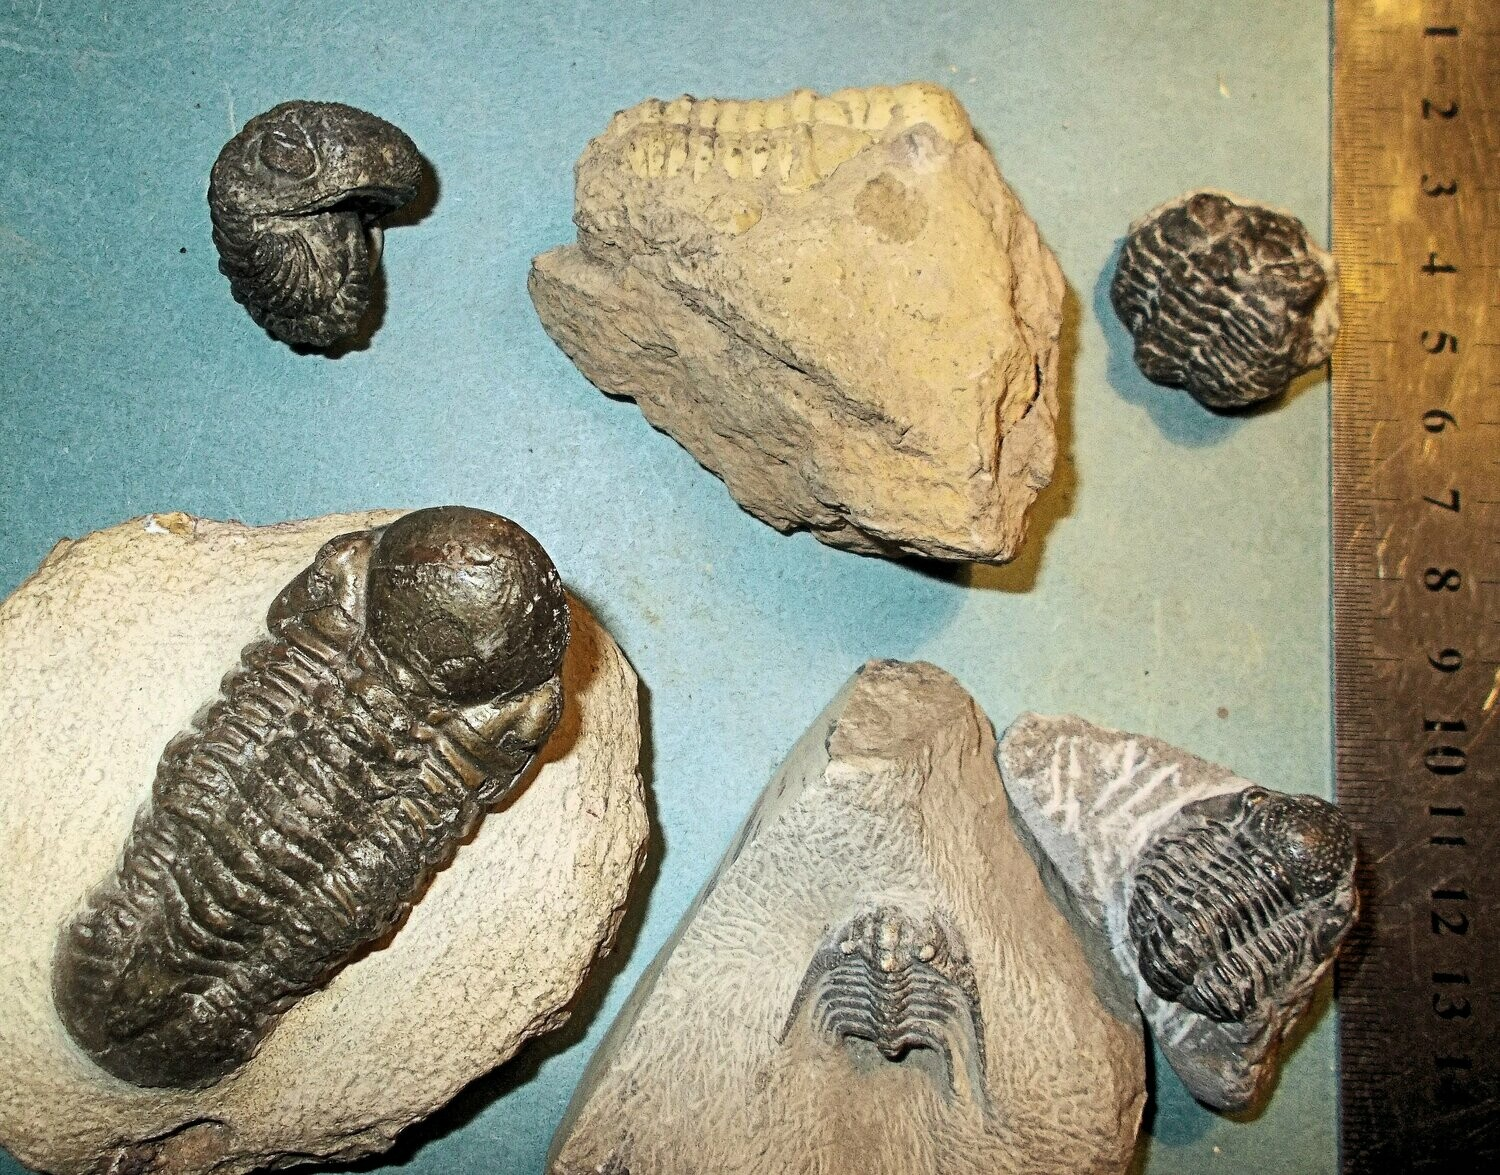 Collection of 6 complete Devonian trilobites from Issoumour, Morocco